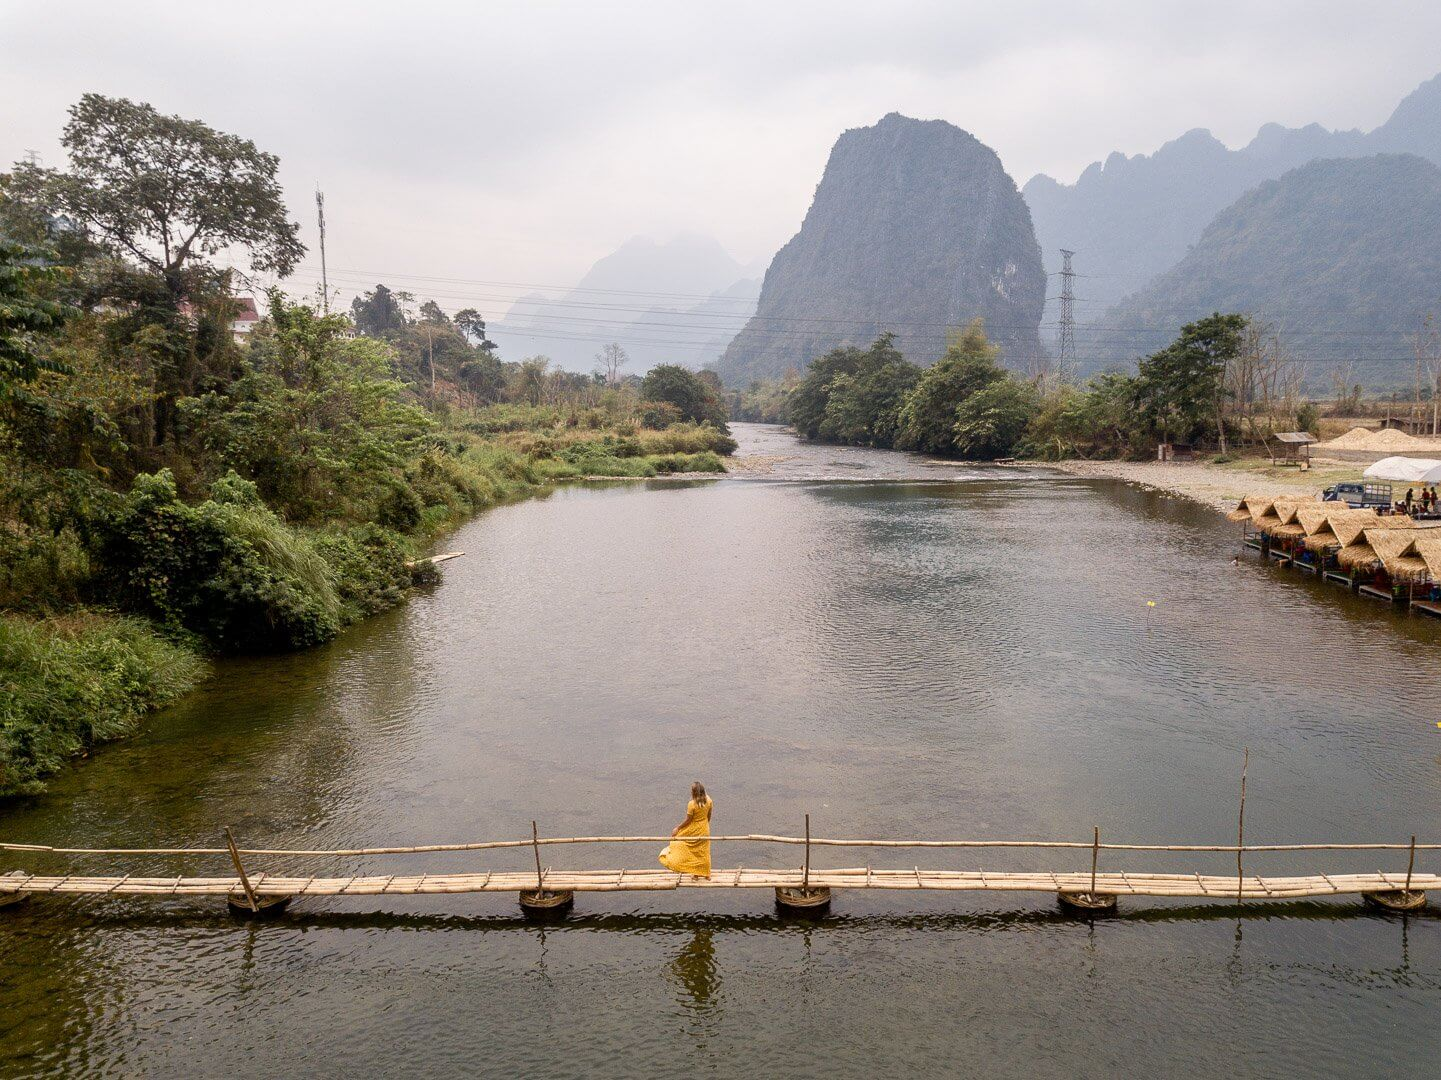 The small pedestrian bamboo bridge at the Pha Tang village near Vang Vieng, Laos